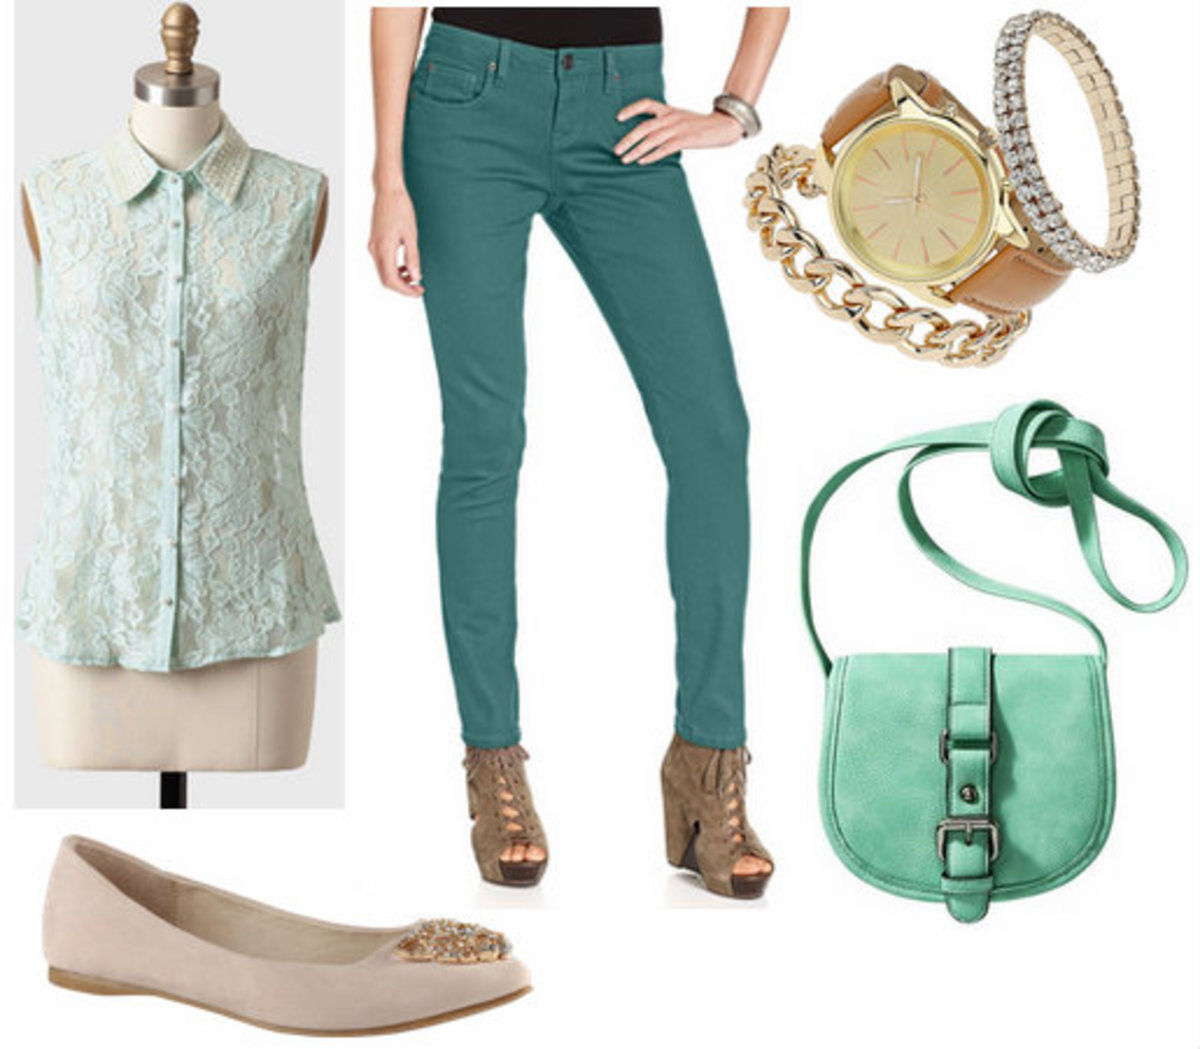 green-emerald-skinny-jeans-green-light-top-blouse-lace-tan-shoe-flats-green-bag-watch-howtowear-fashion-style-outfit-spring-summer-lunch.jpg